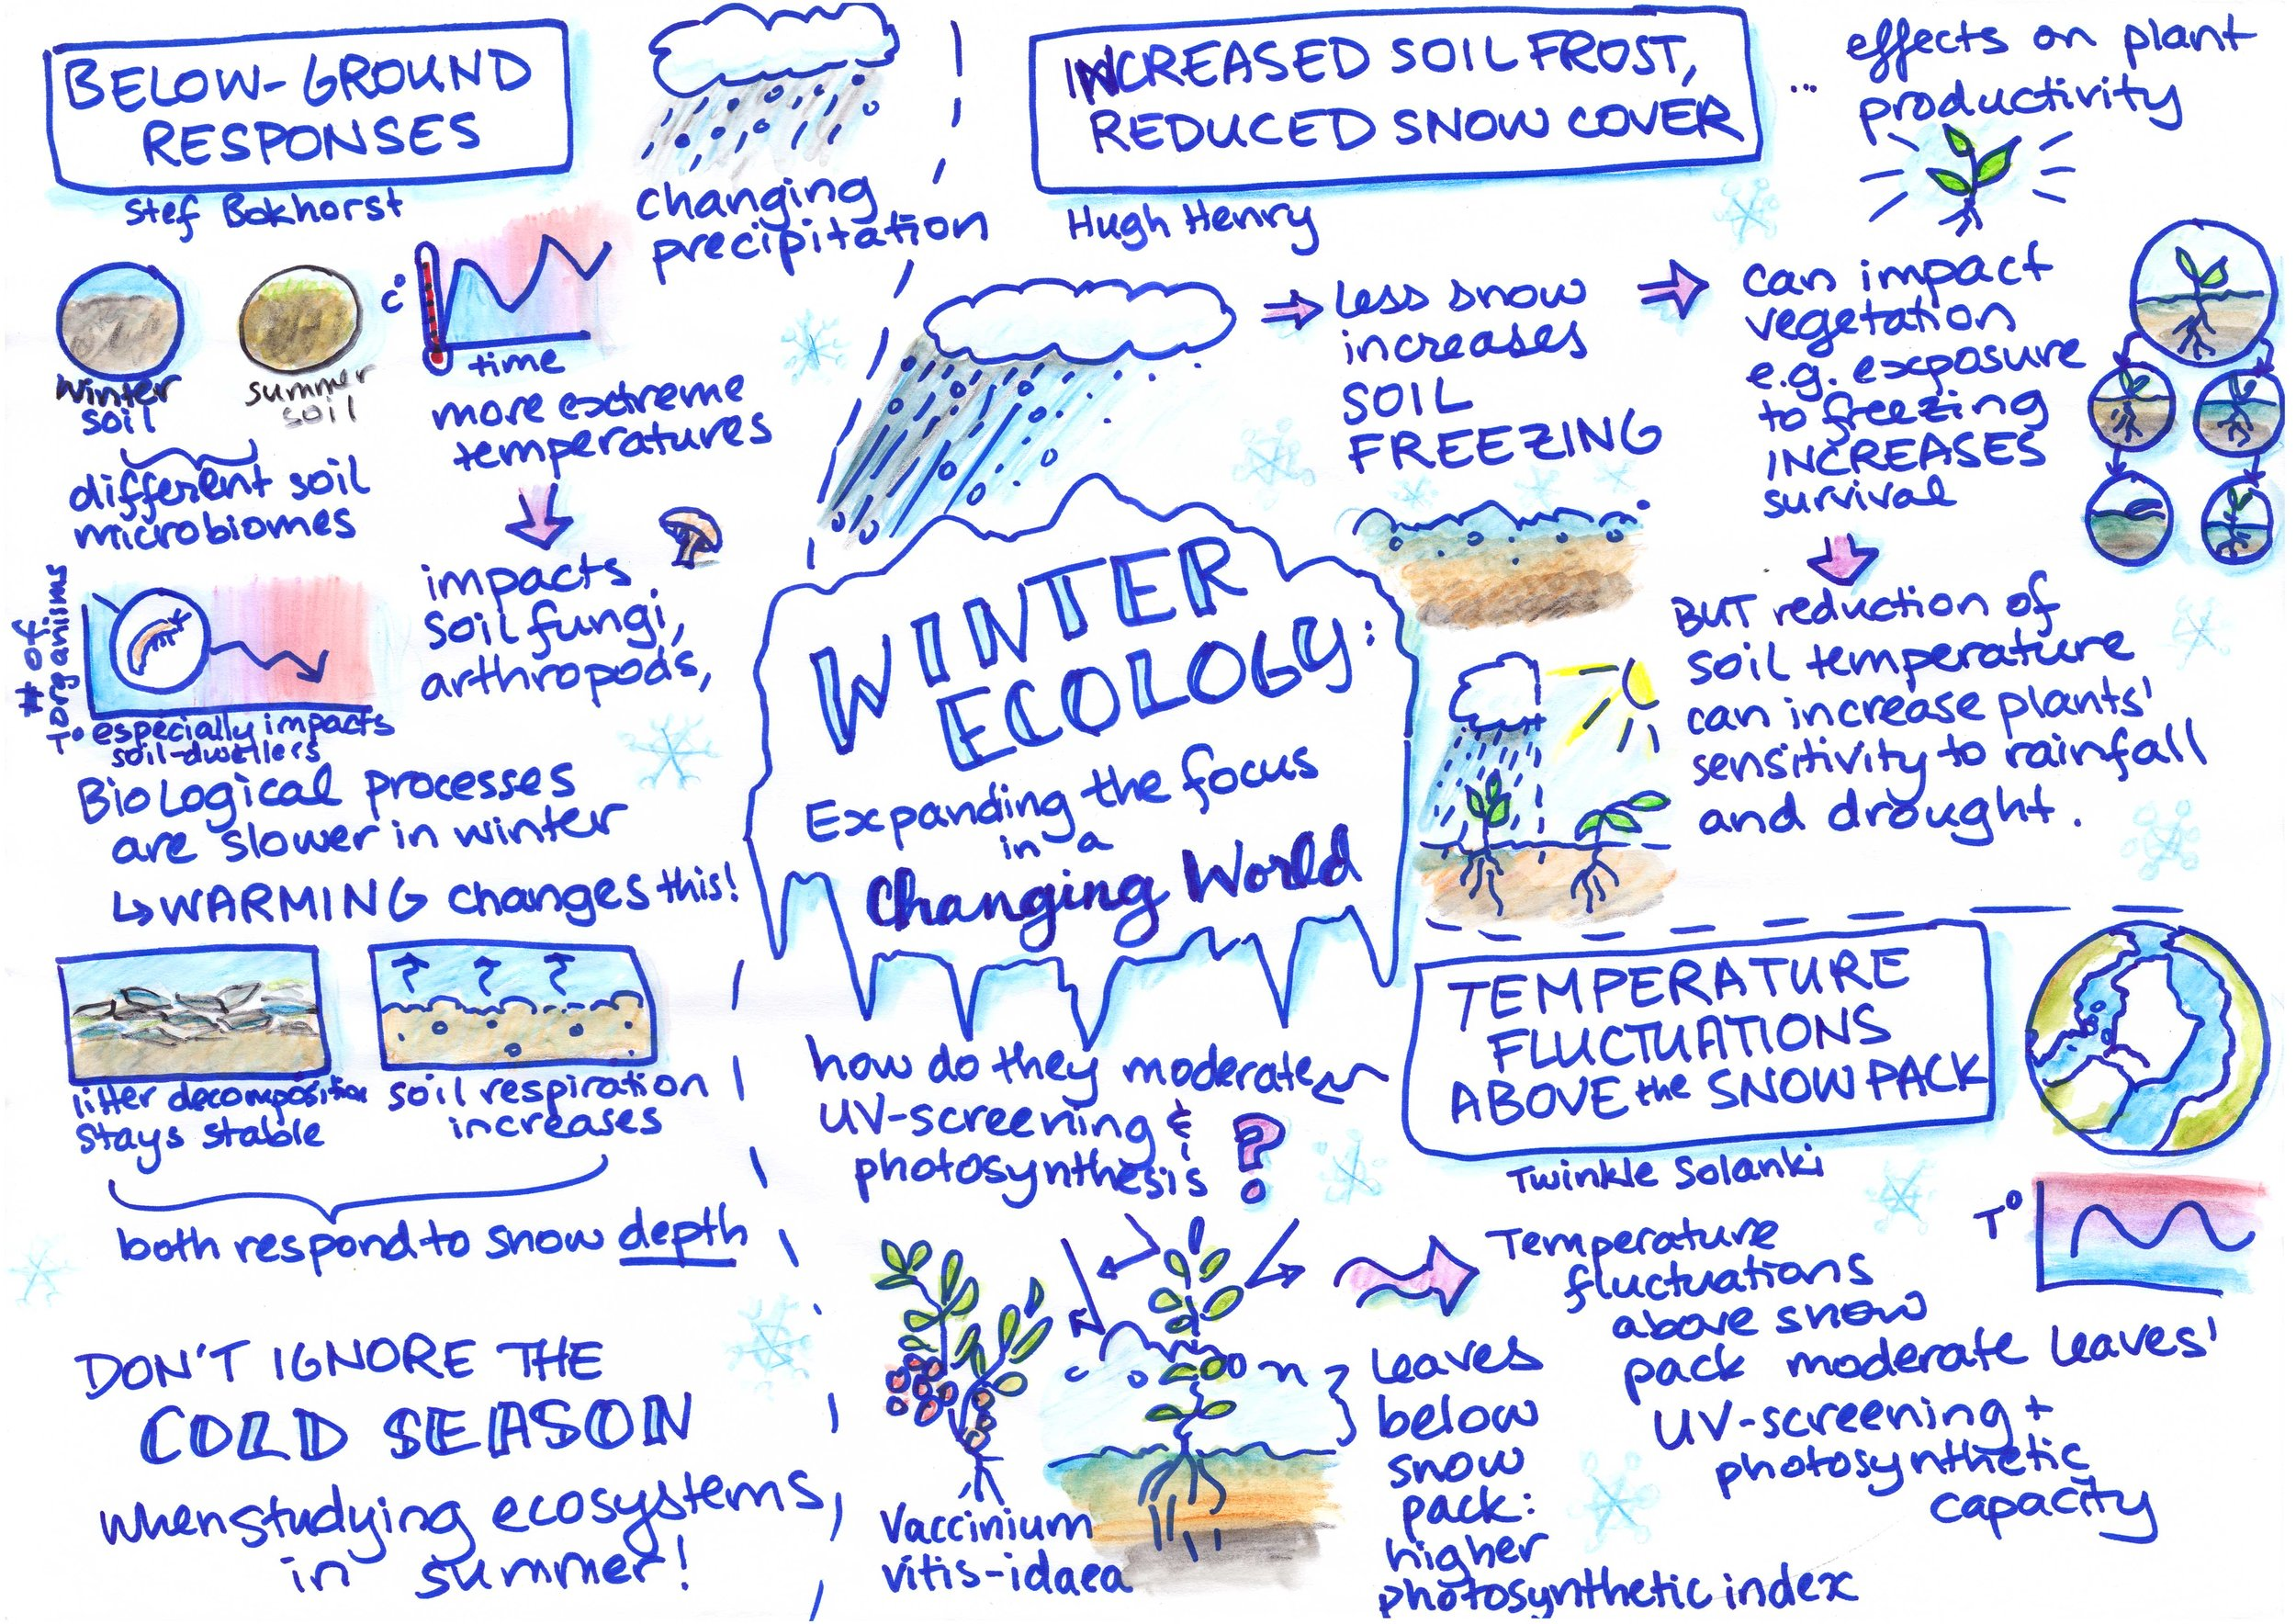 Winter Ecology: Expanding the Focus in a Changing World